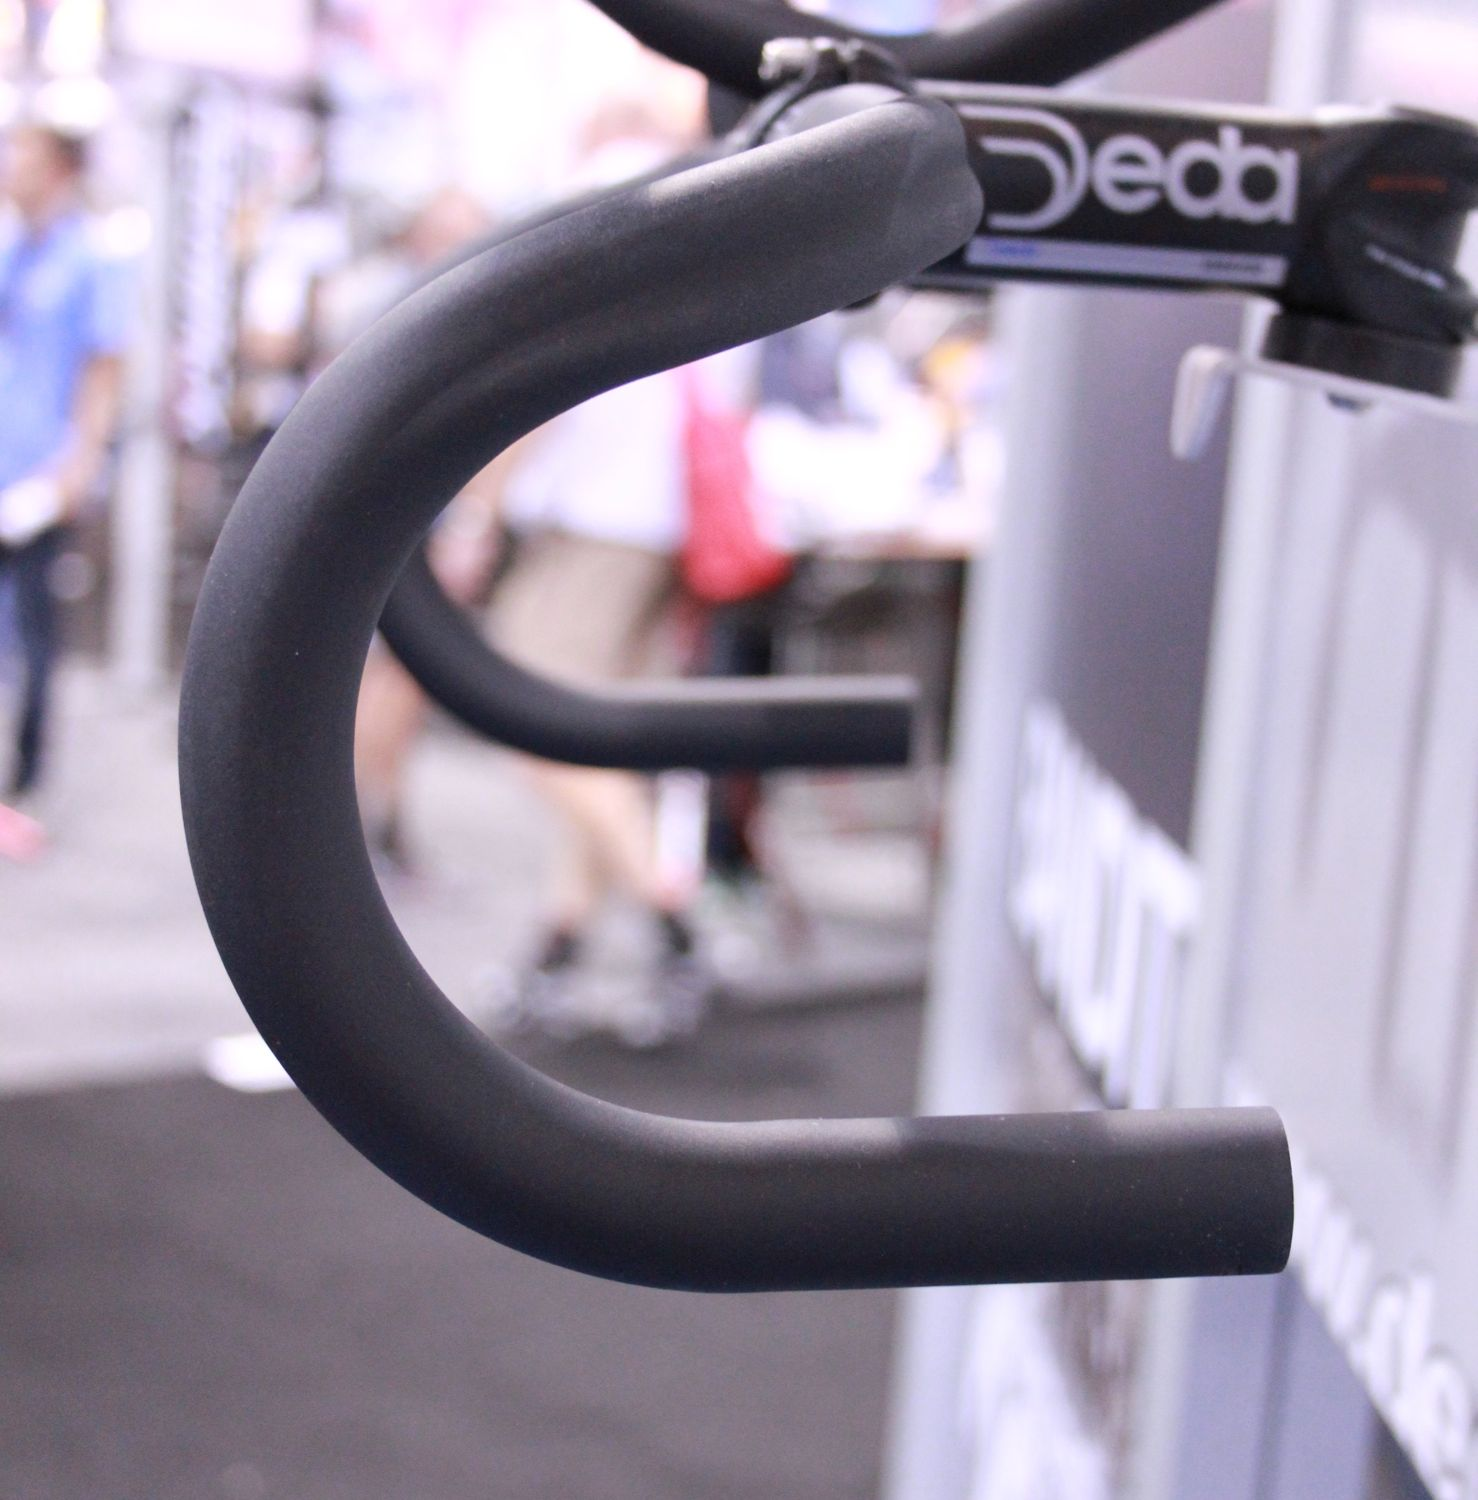 Deda Elementi round bend drop bars